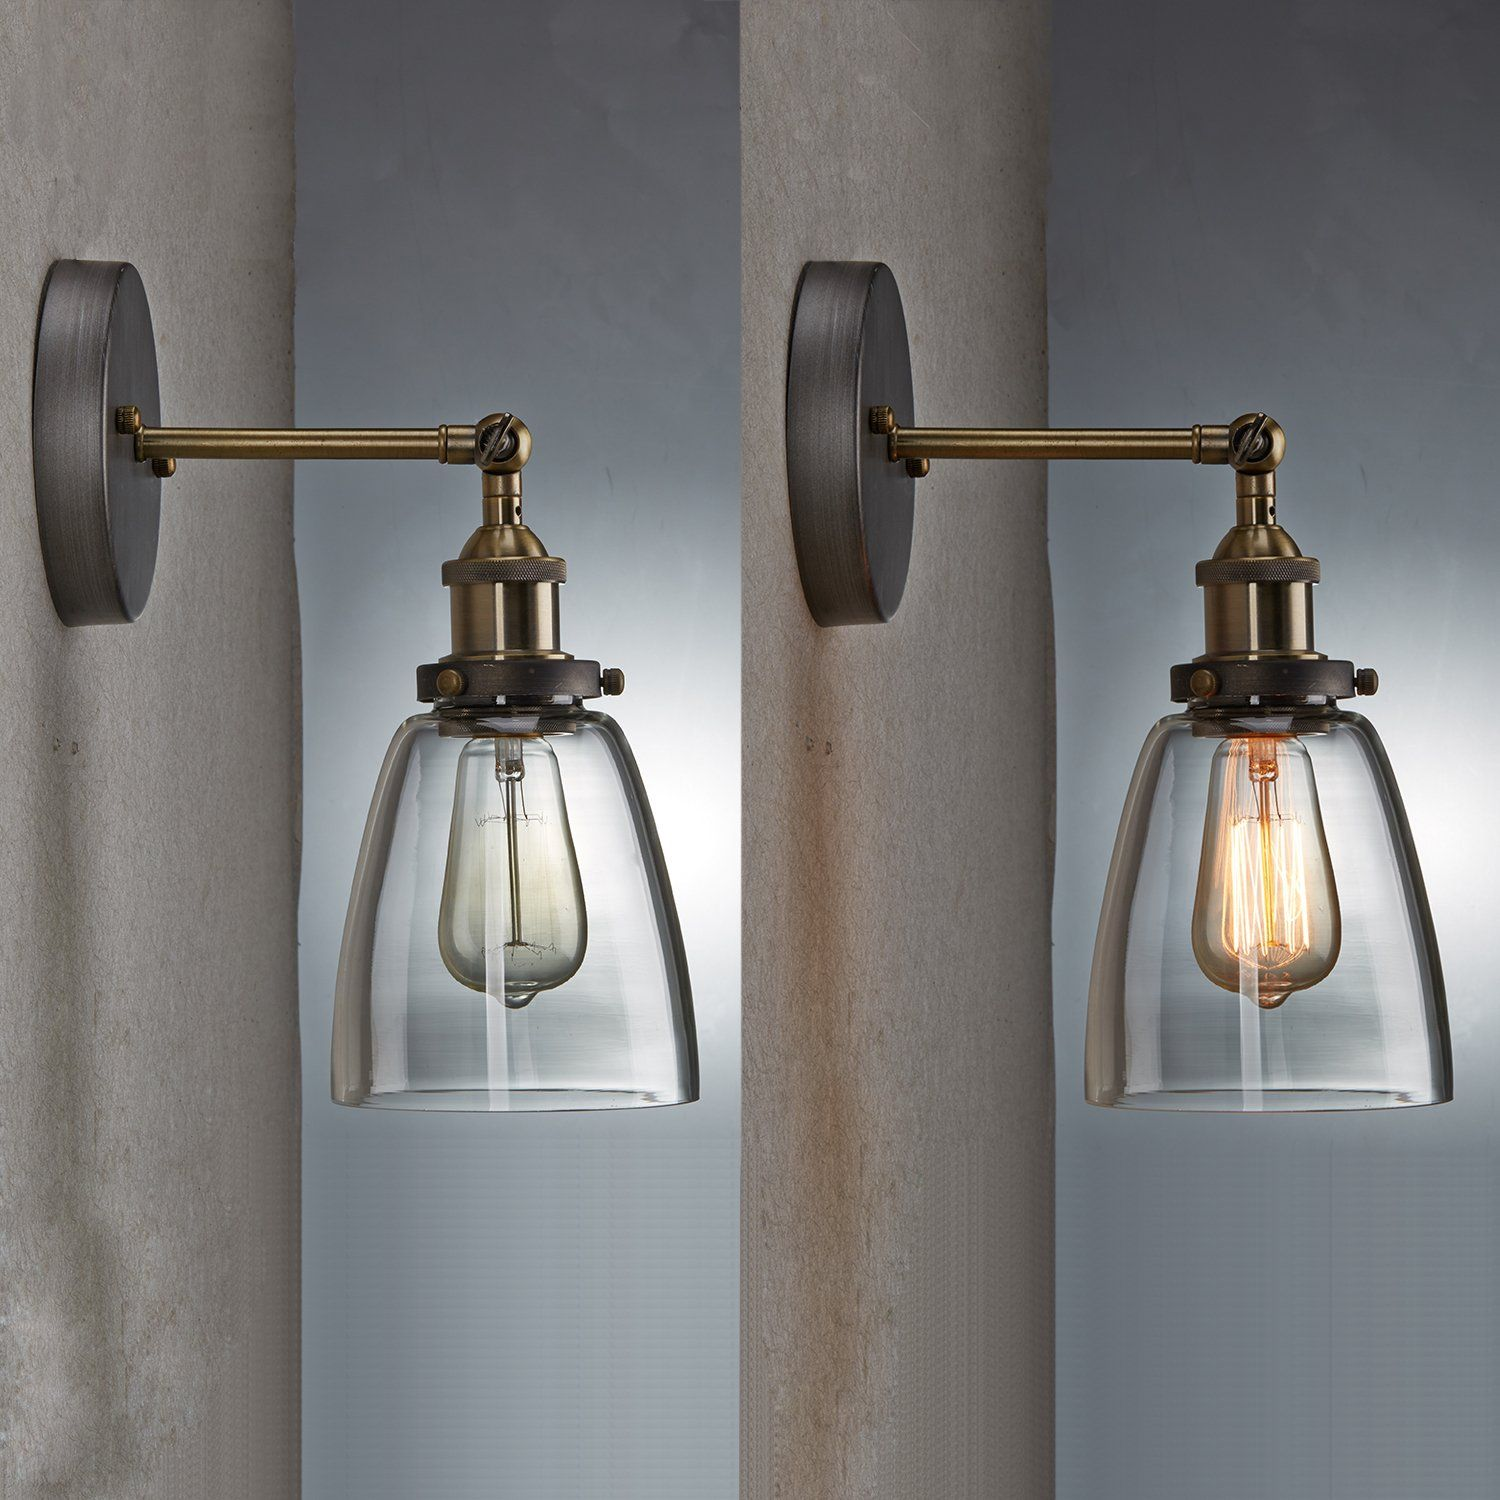 Wall Sconce With Pull Chain At Destination Lighting 98 00 Wall